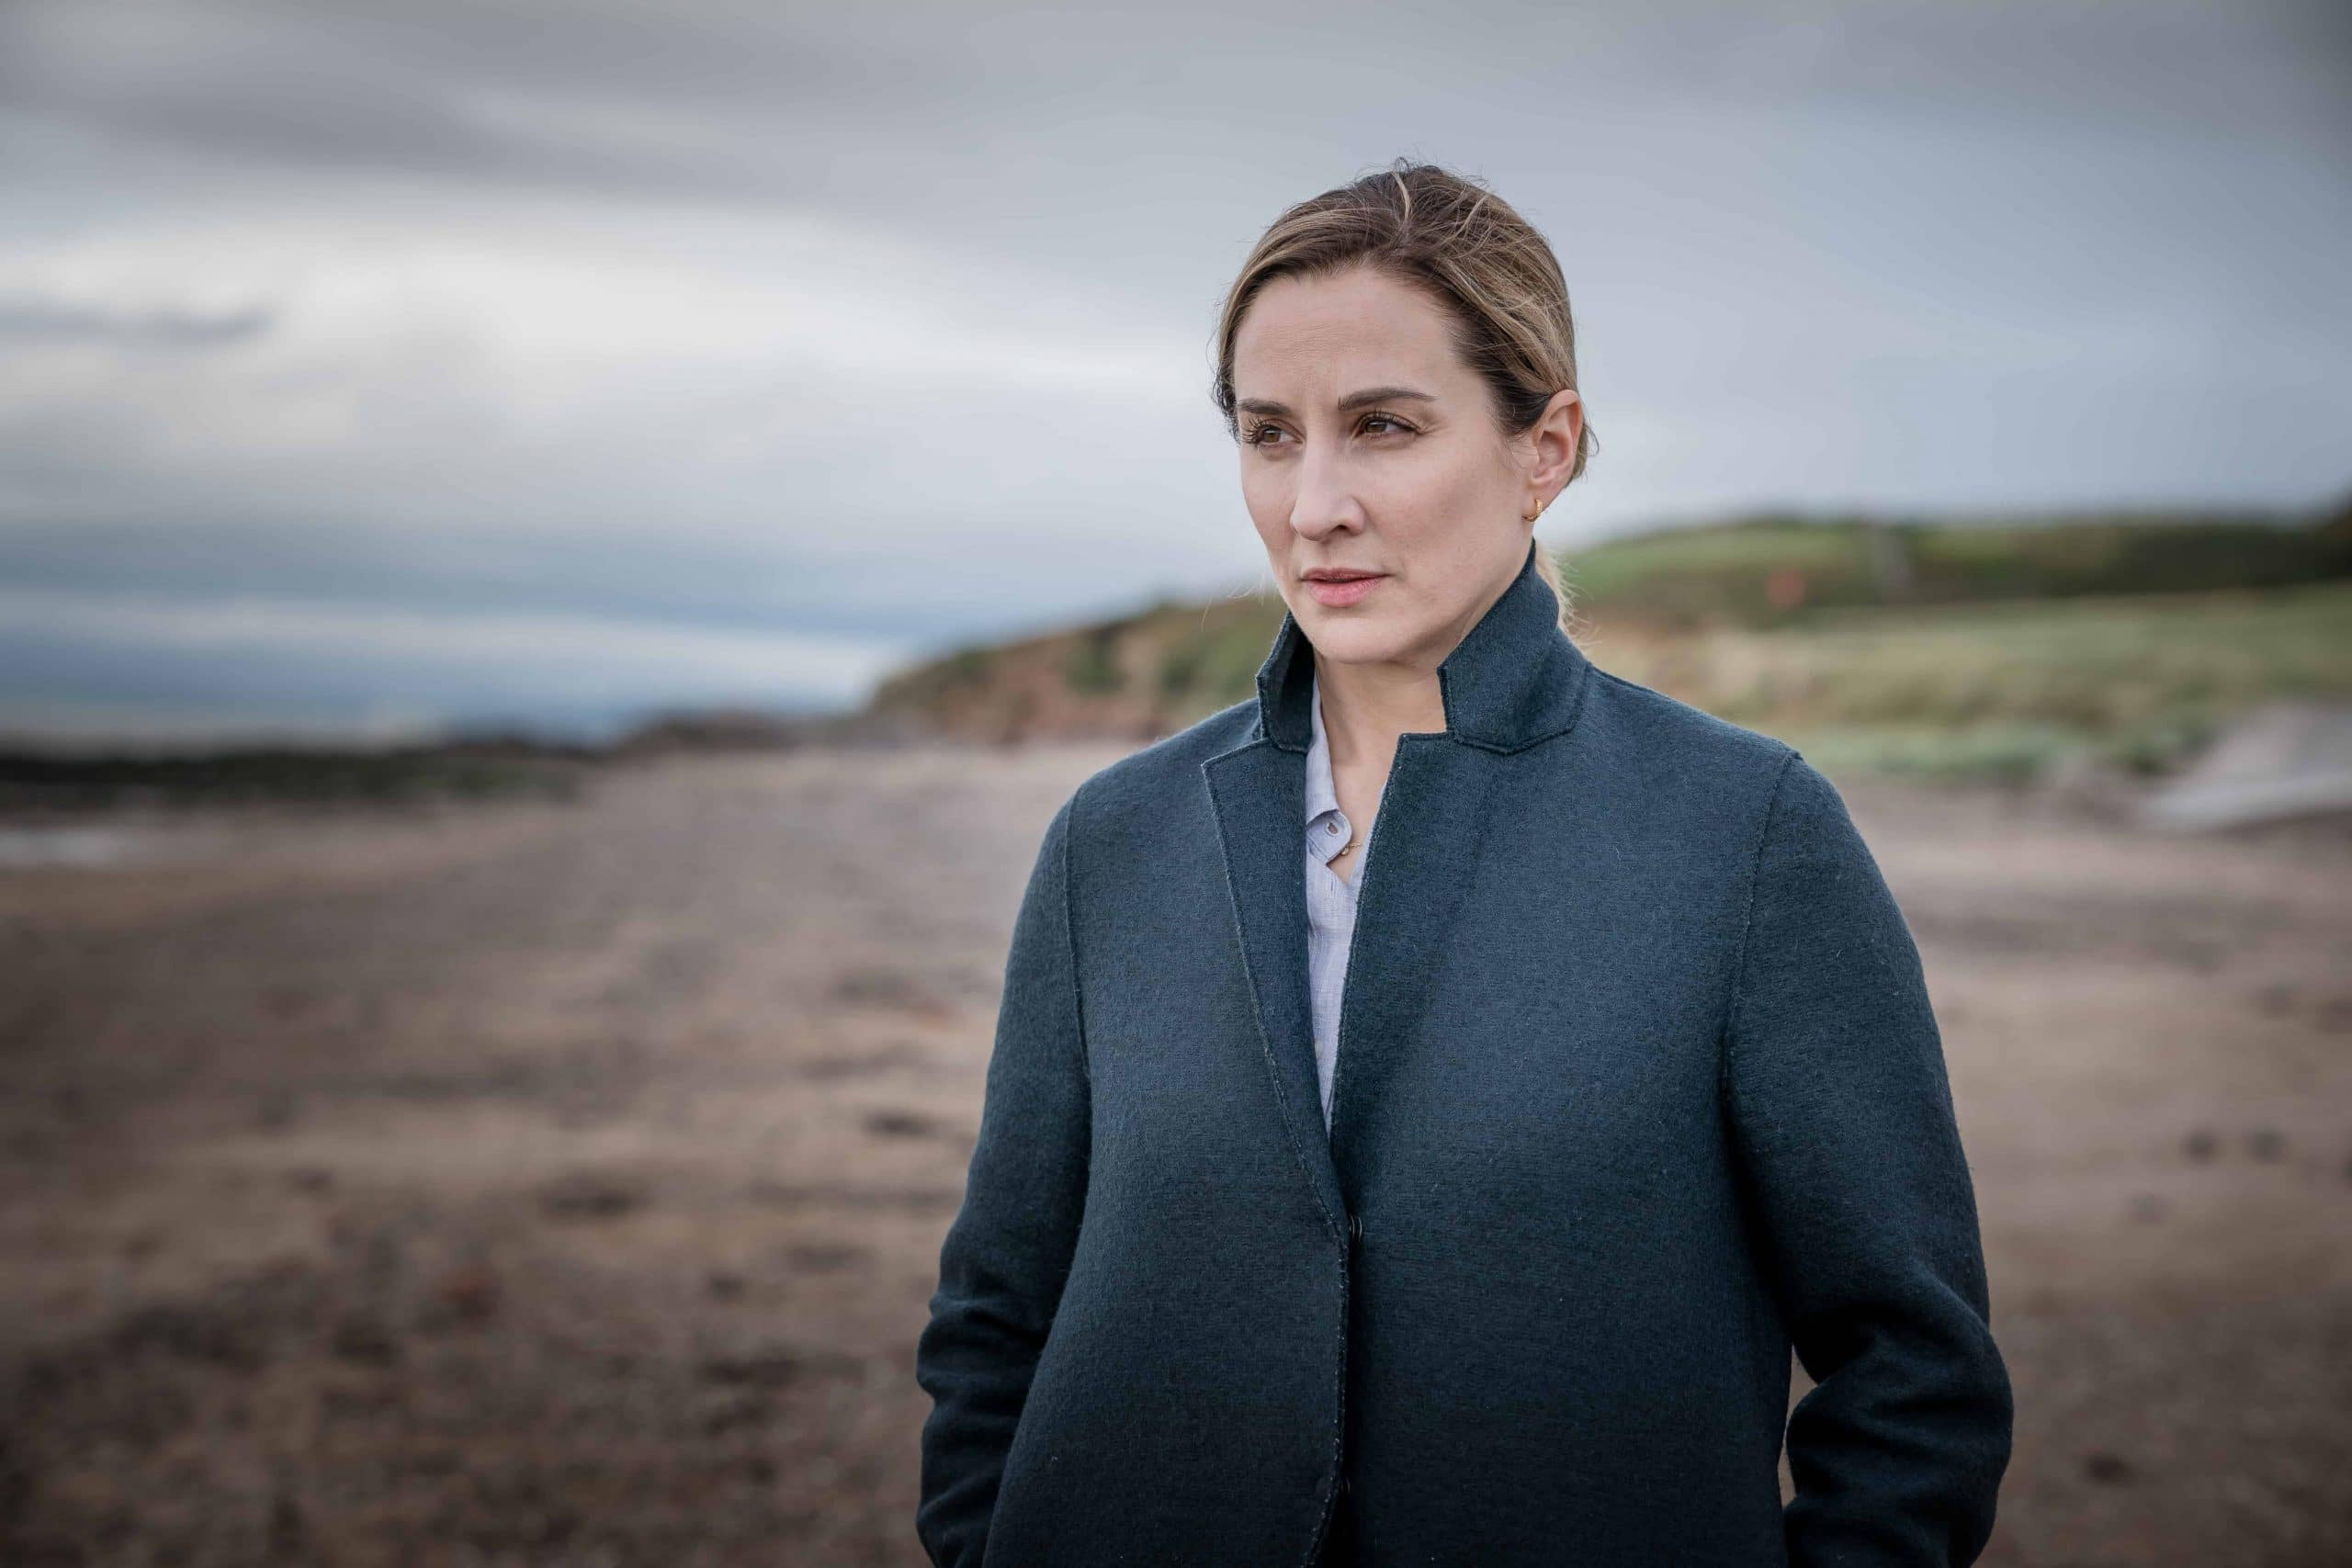 74 New British TV Shows in 2019: Dramas, Comedies, Mystery Series 5